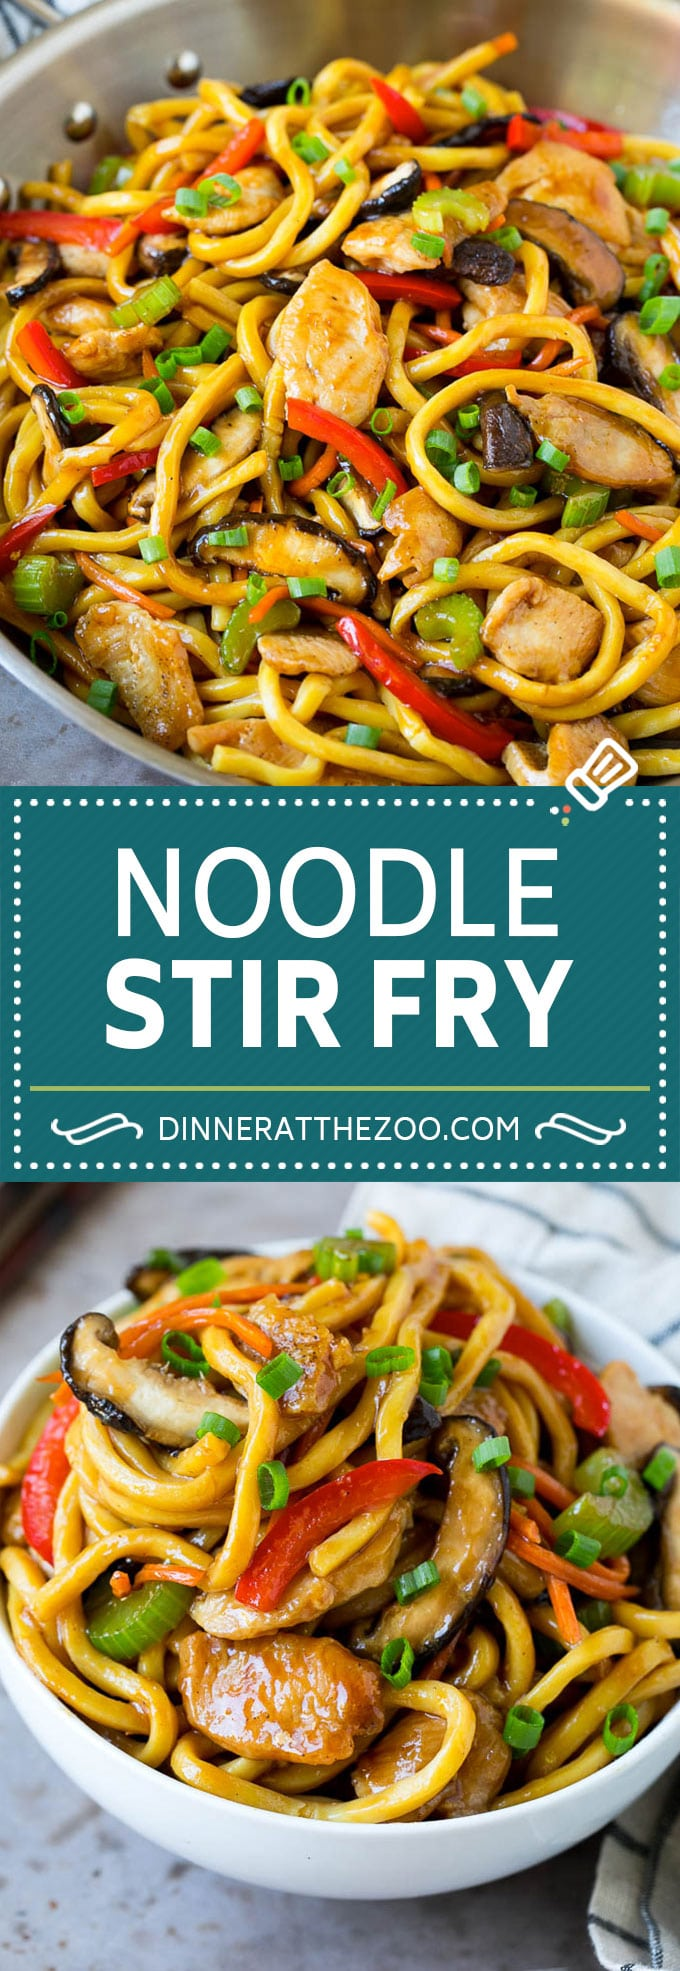 Stir Fry Noodles With Chicken Dinner At The Zoo